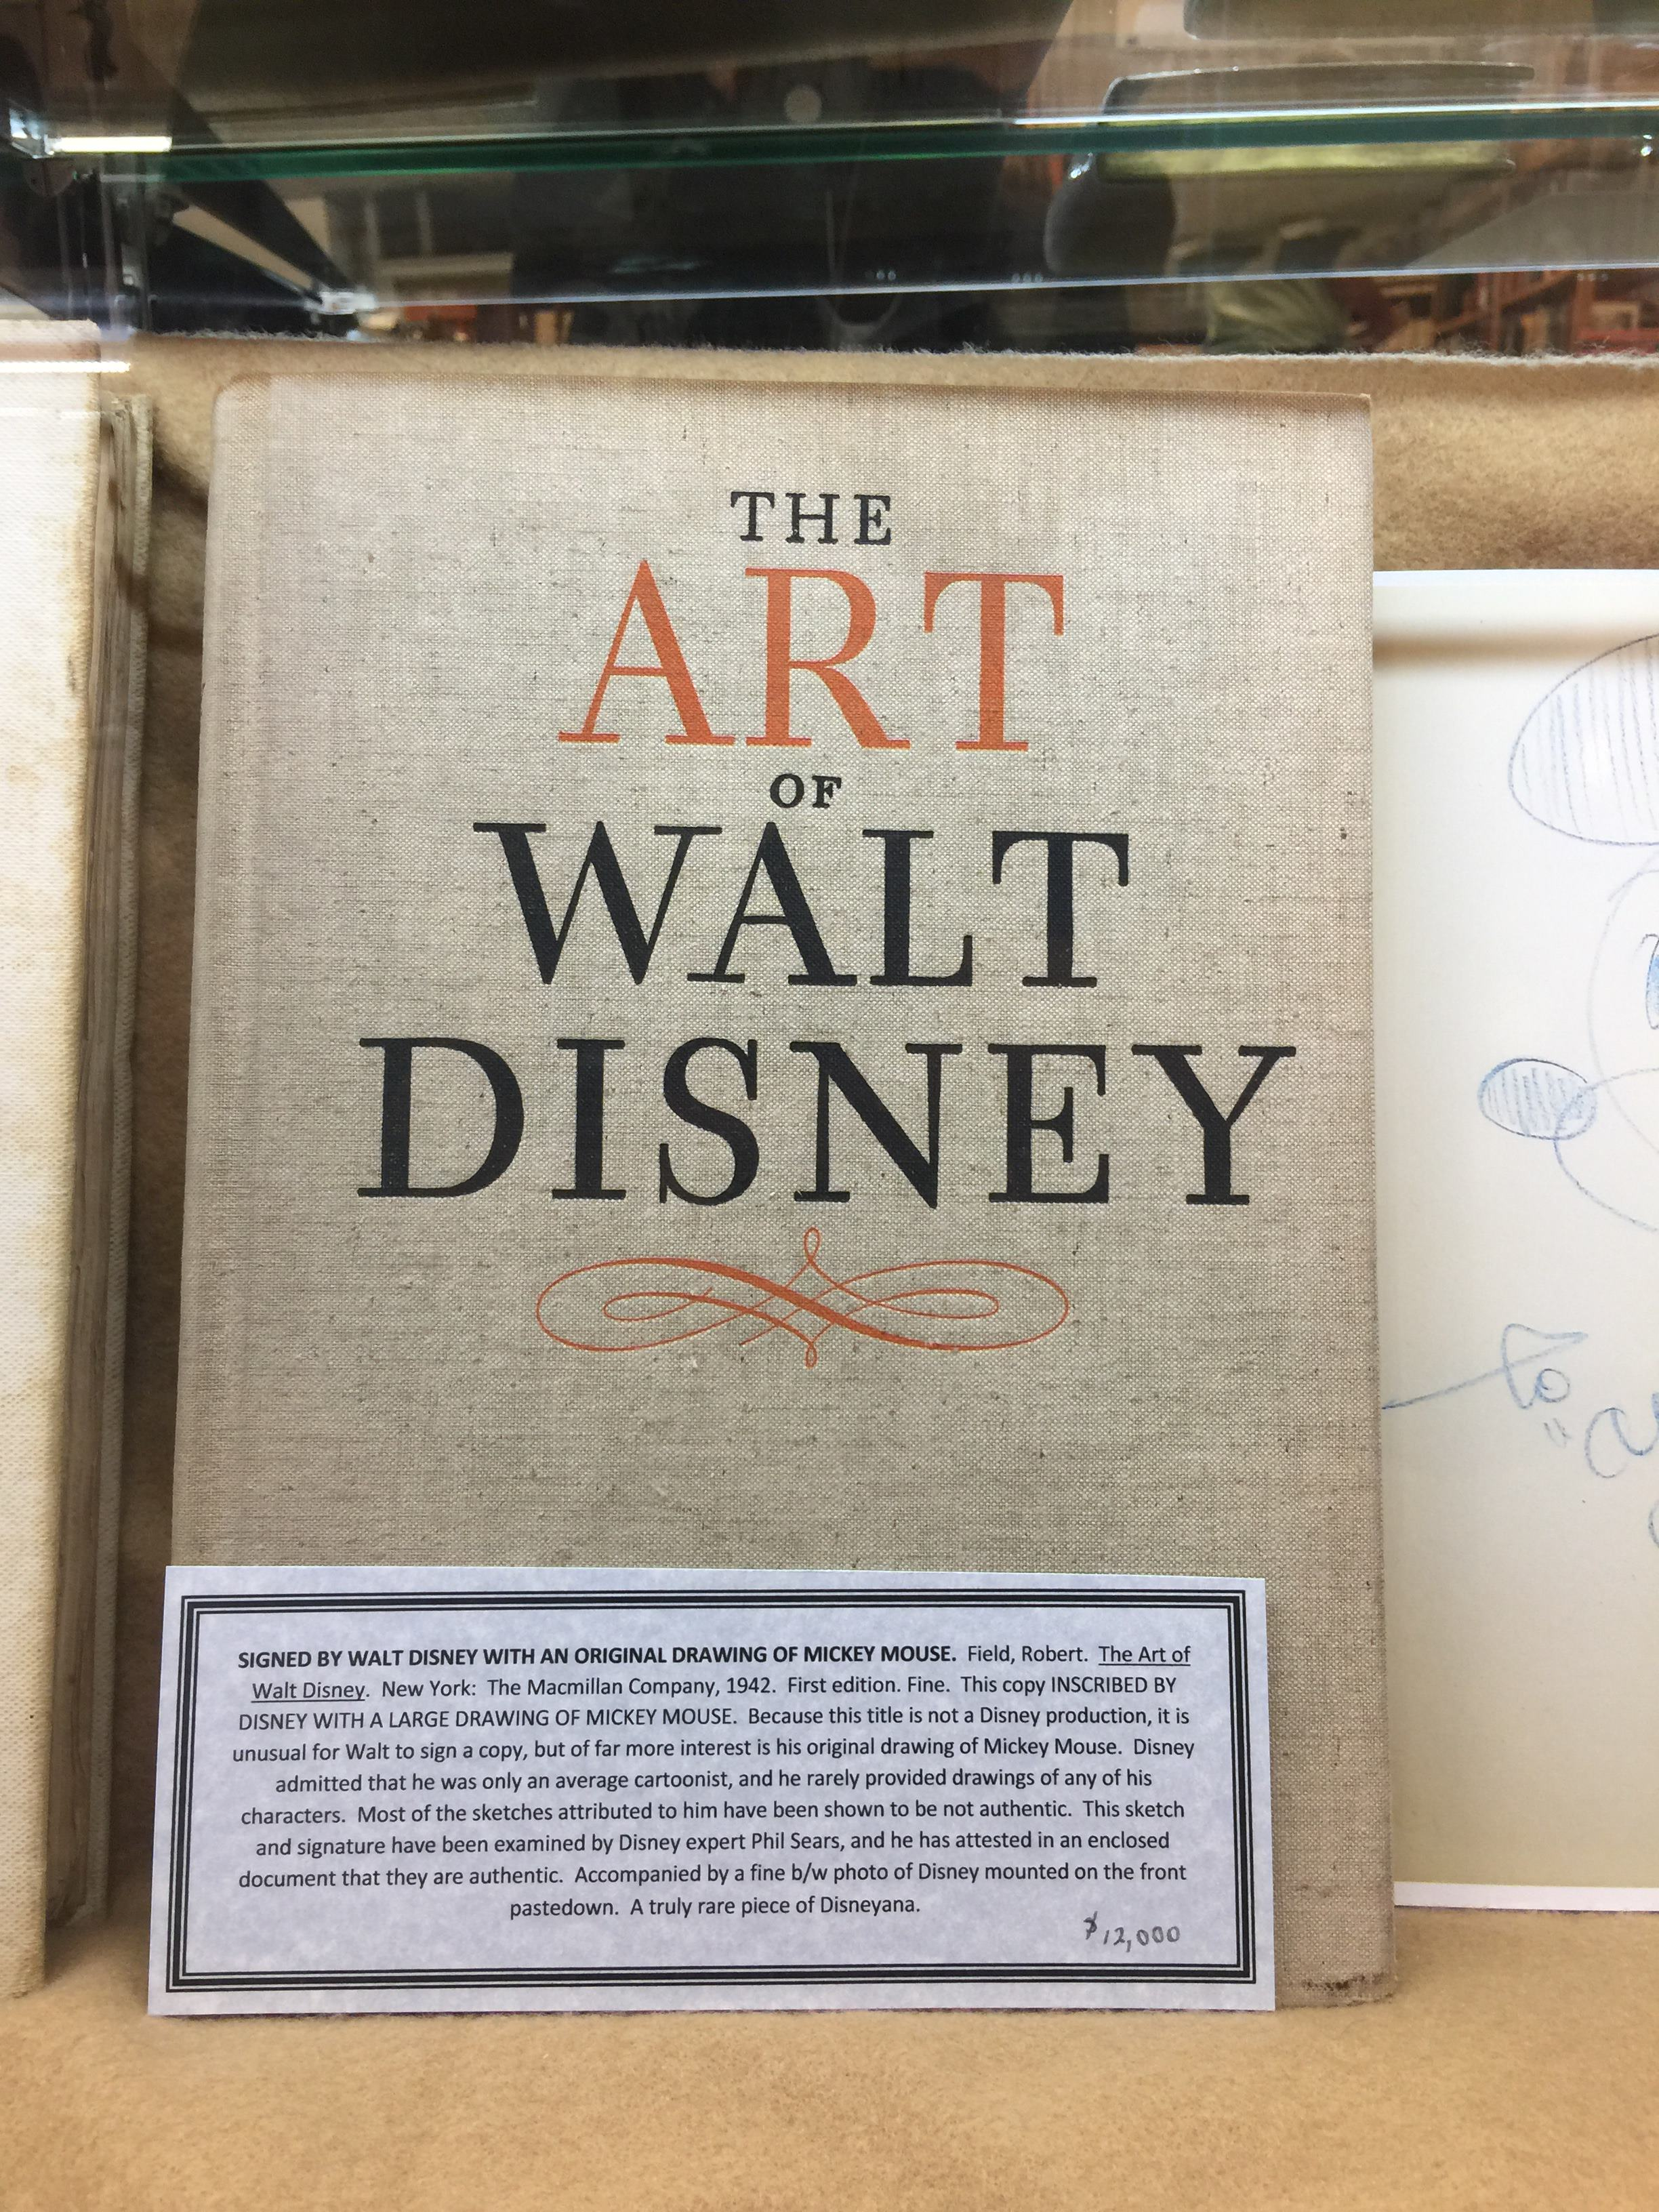 The art of Walt Disney with a hand-drawn sketch of Mickey Mouse by Disney himself inside